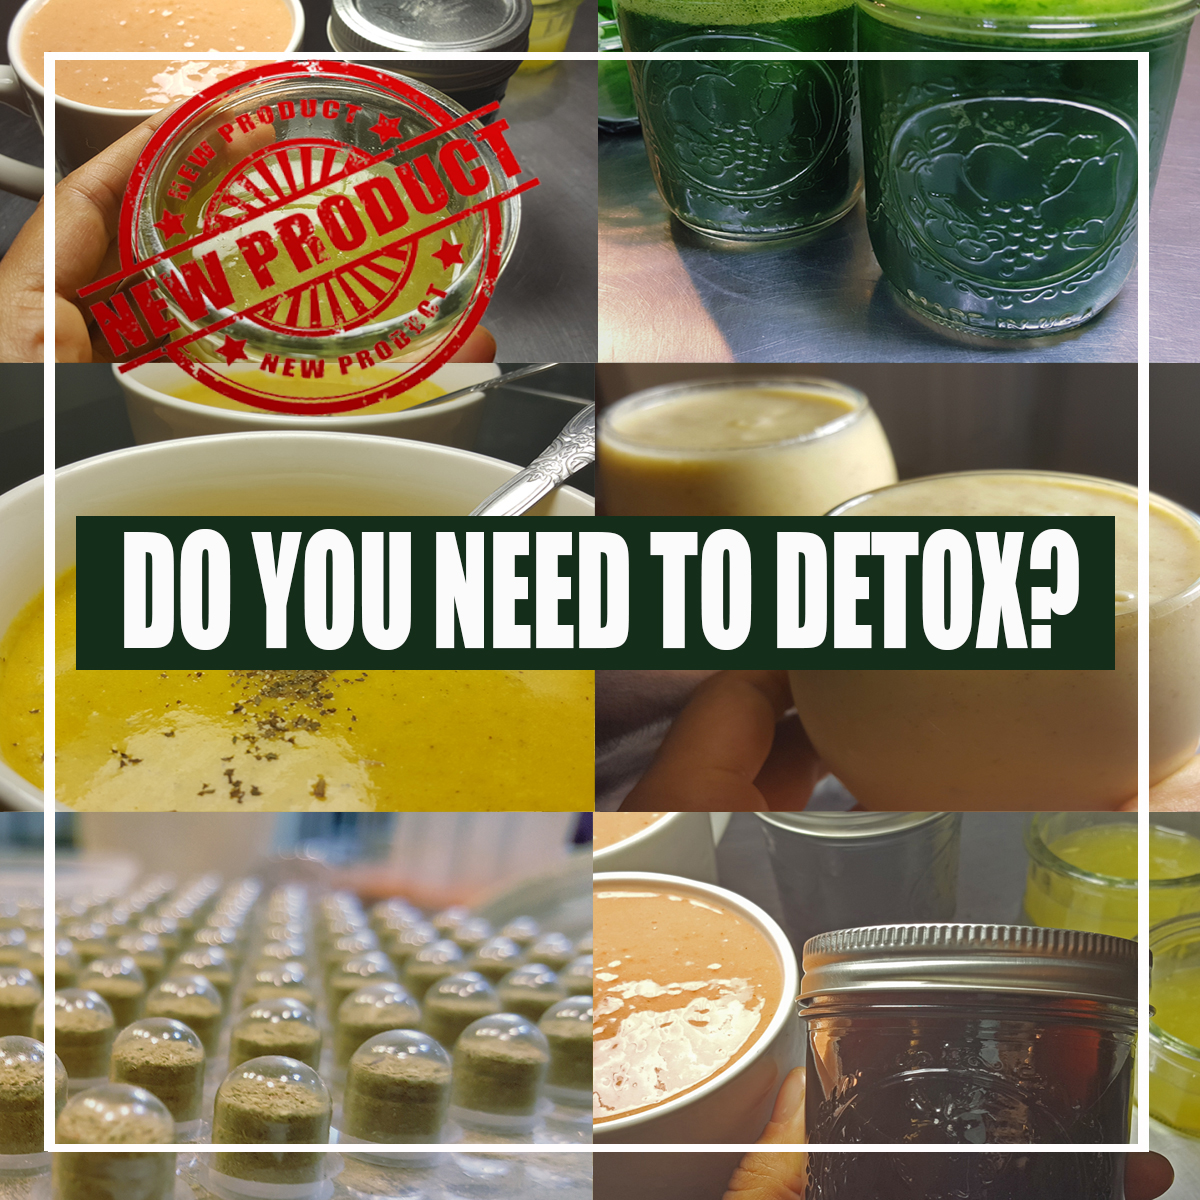 WOULD YOU LIKE TO DETOX WITH US?